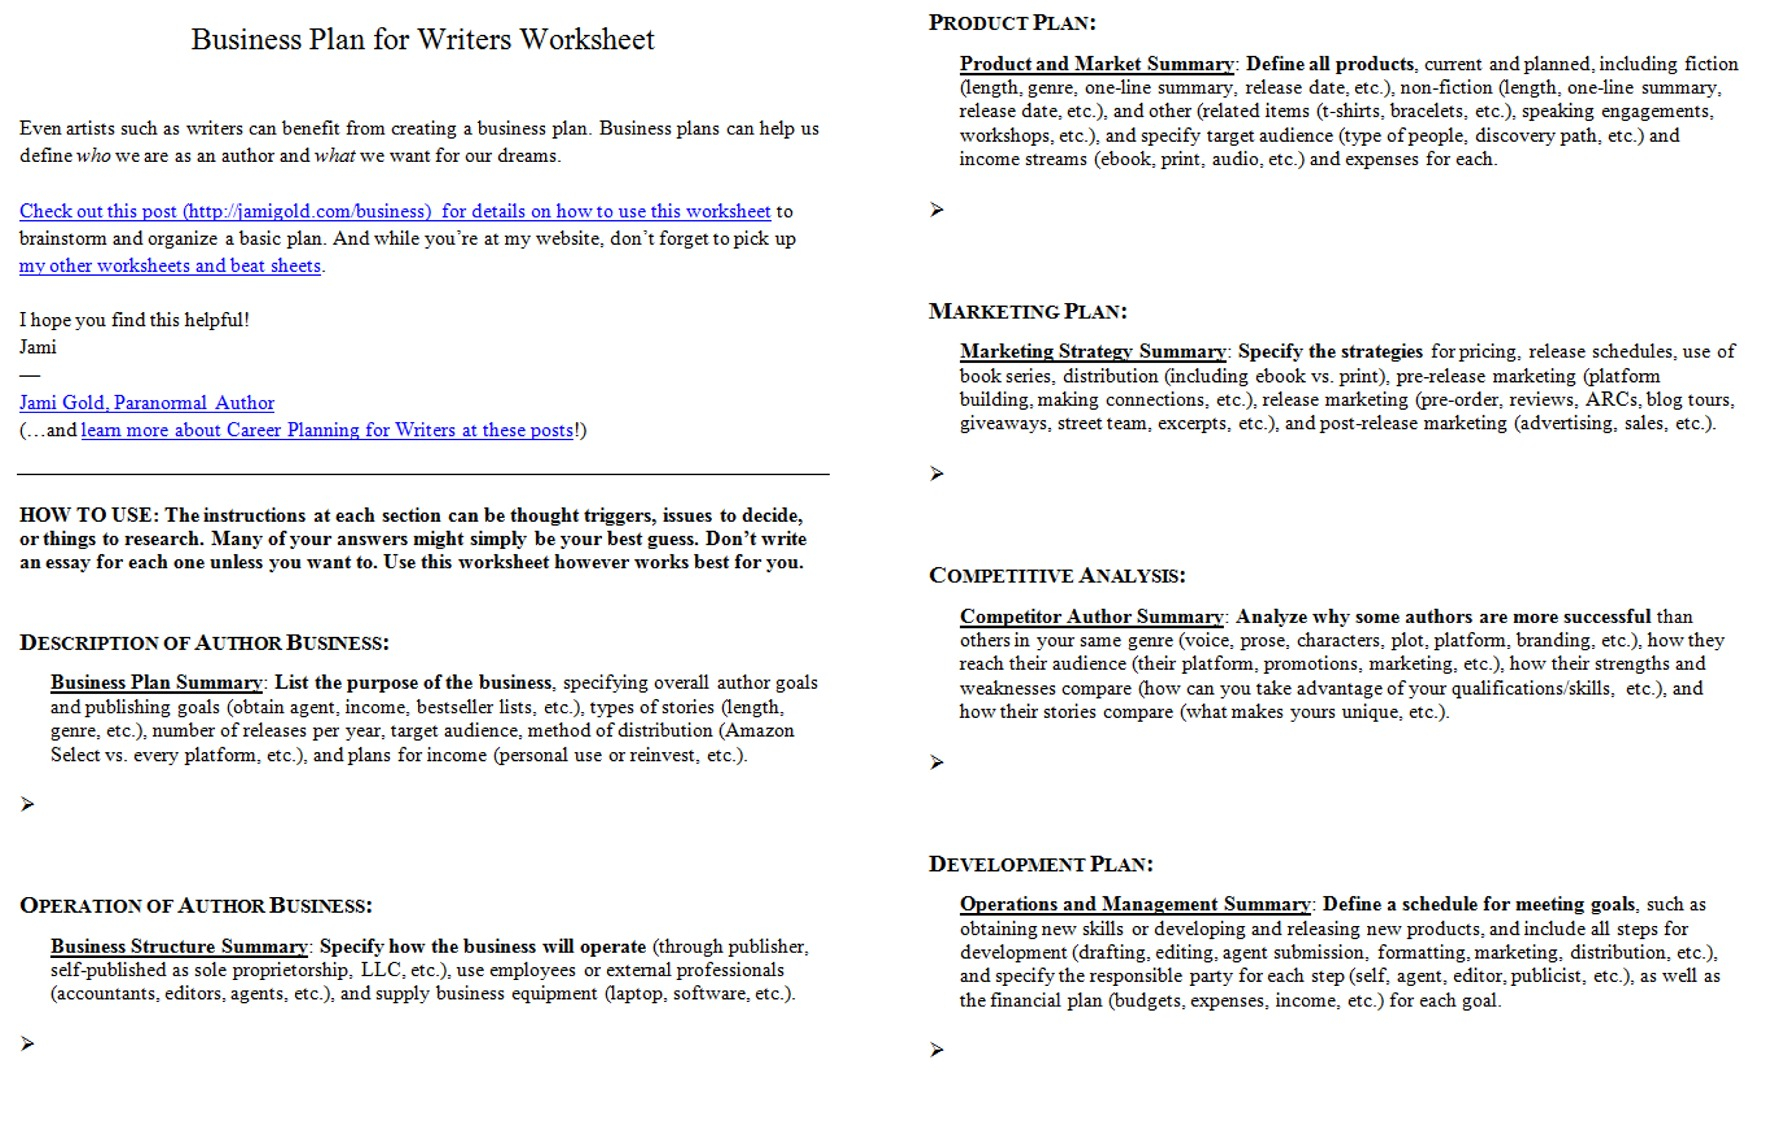 Aldiablosus  Splendid Worksheets For Writers  Jami Gold Paranormal Author With Hot Screen Shot Of Both Pages Of The Business Plan For Writers Worksheet With Astounding Algebra  Matrices Worksheets Also Finding Perimeter Of Irregular Shapes Worksheets In Addition Practice Fraction Worksheets And Number Line Addition Worksheet As Well As Map Worksheets For St Grade Additionally Telling Time To The Nearest  Minutes Worksheets From Jamigoldcom With Aldiablosus  Hot Worksheets For Writers  Jami Gold Paranormal Author With Astounding Screen Shot Of Both Pages Of The Business Plan For Writers Worksheet And Splendid Algebra  Matrices Worksheets Also Finding Perimeter Of Irregular Shapes Worksheets In Addition Practice Fraction Worksheets From Jamigoldcom